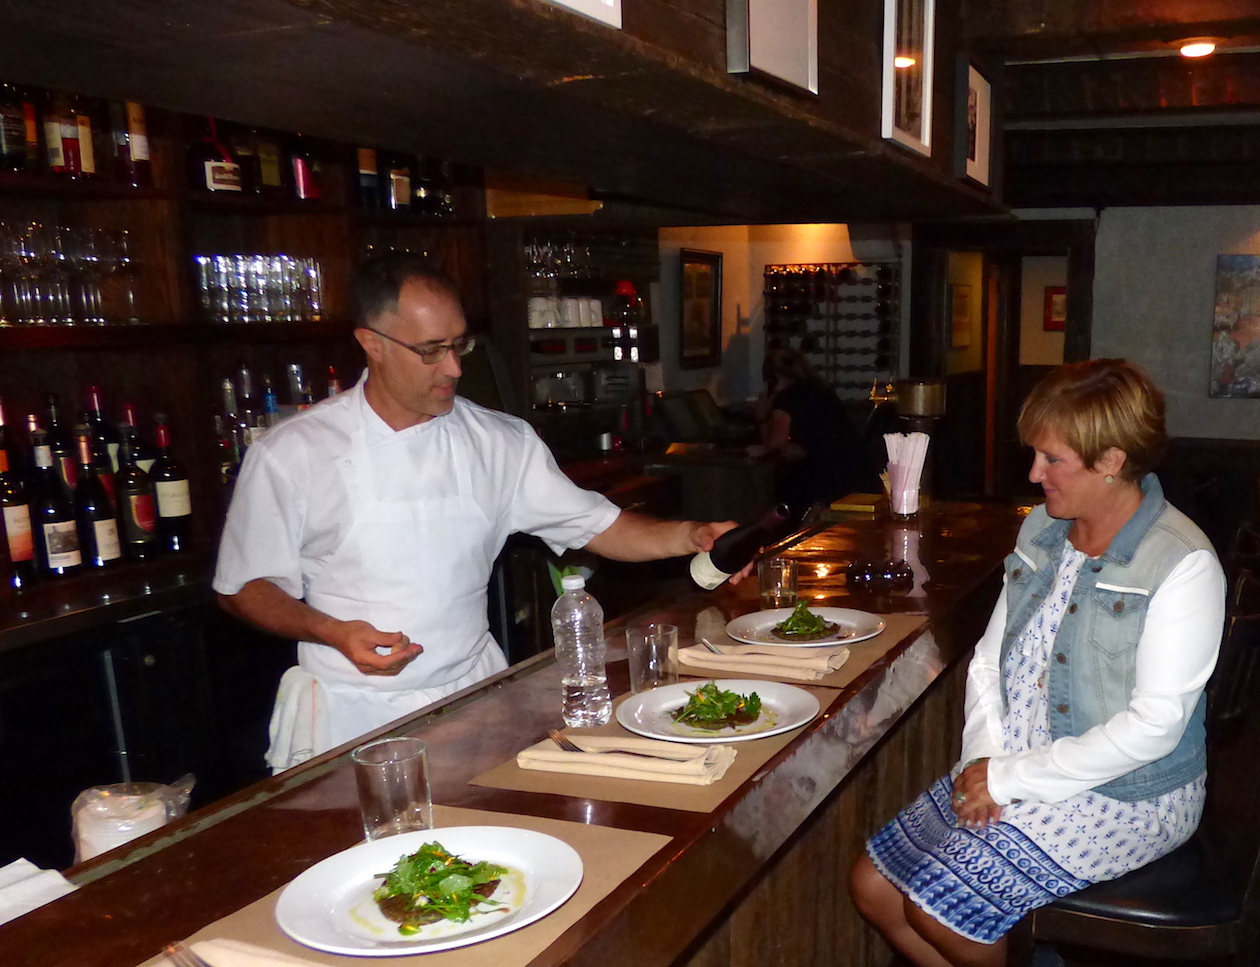 Chef Carmelo Raimondi serves a Roaming Tour tasting to Karen Merkel inside Carmelo's Restaurant in Lewiston.